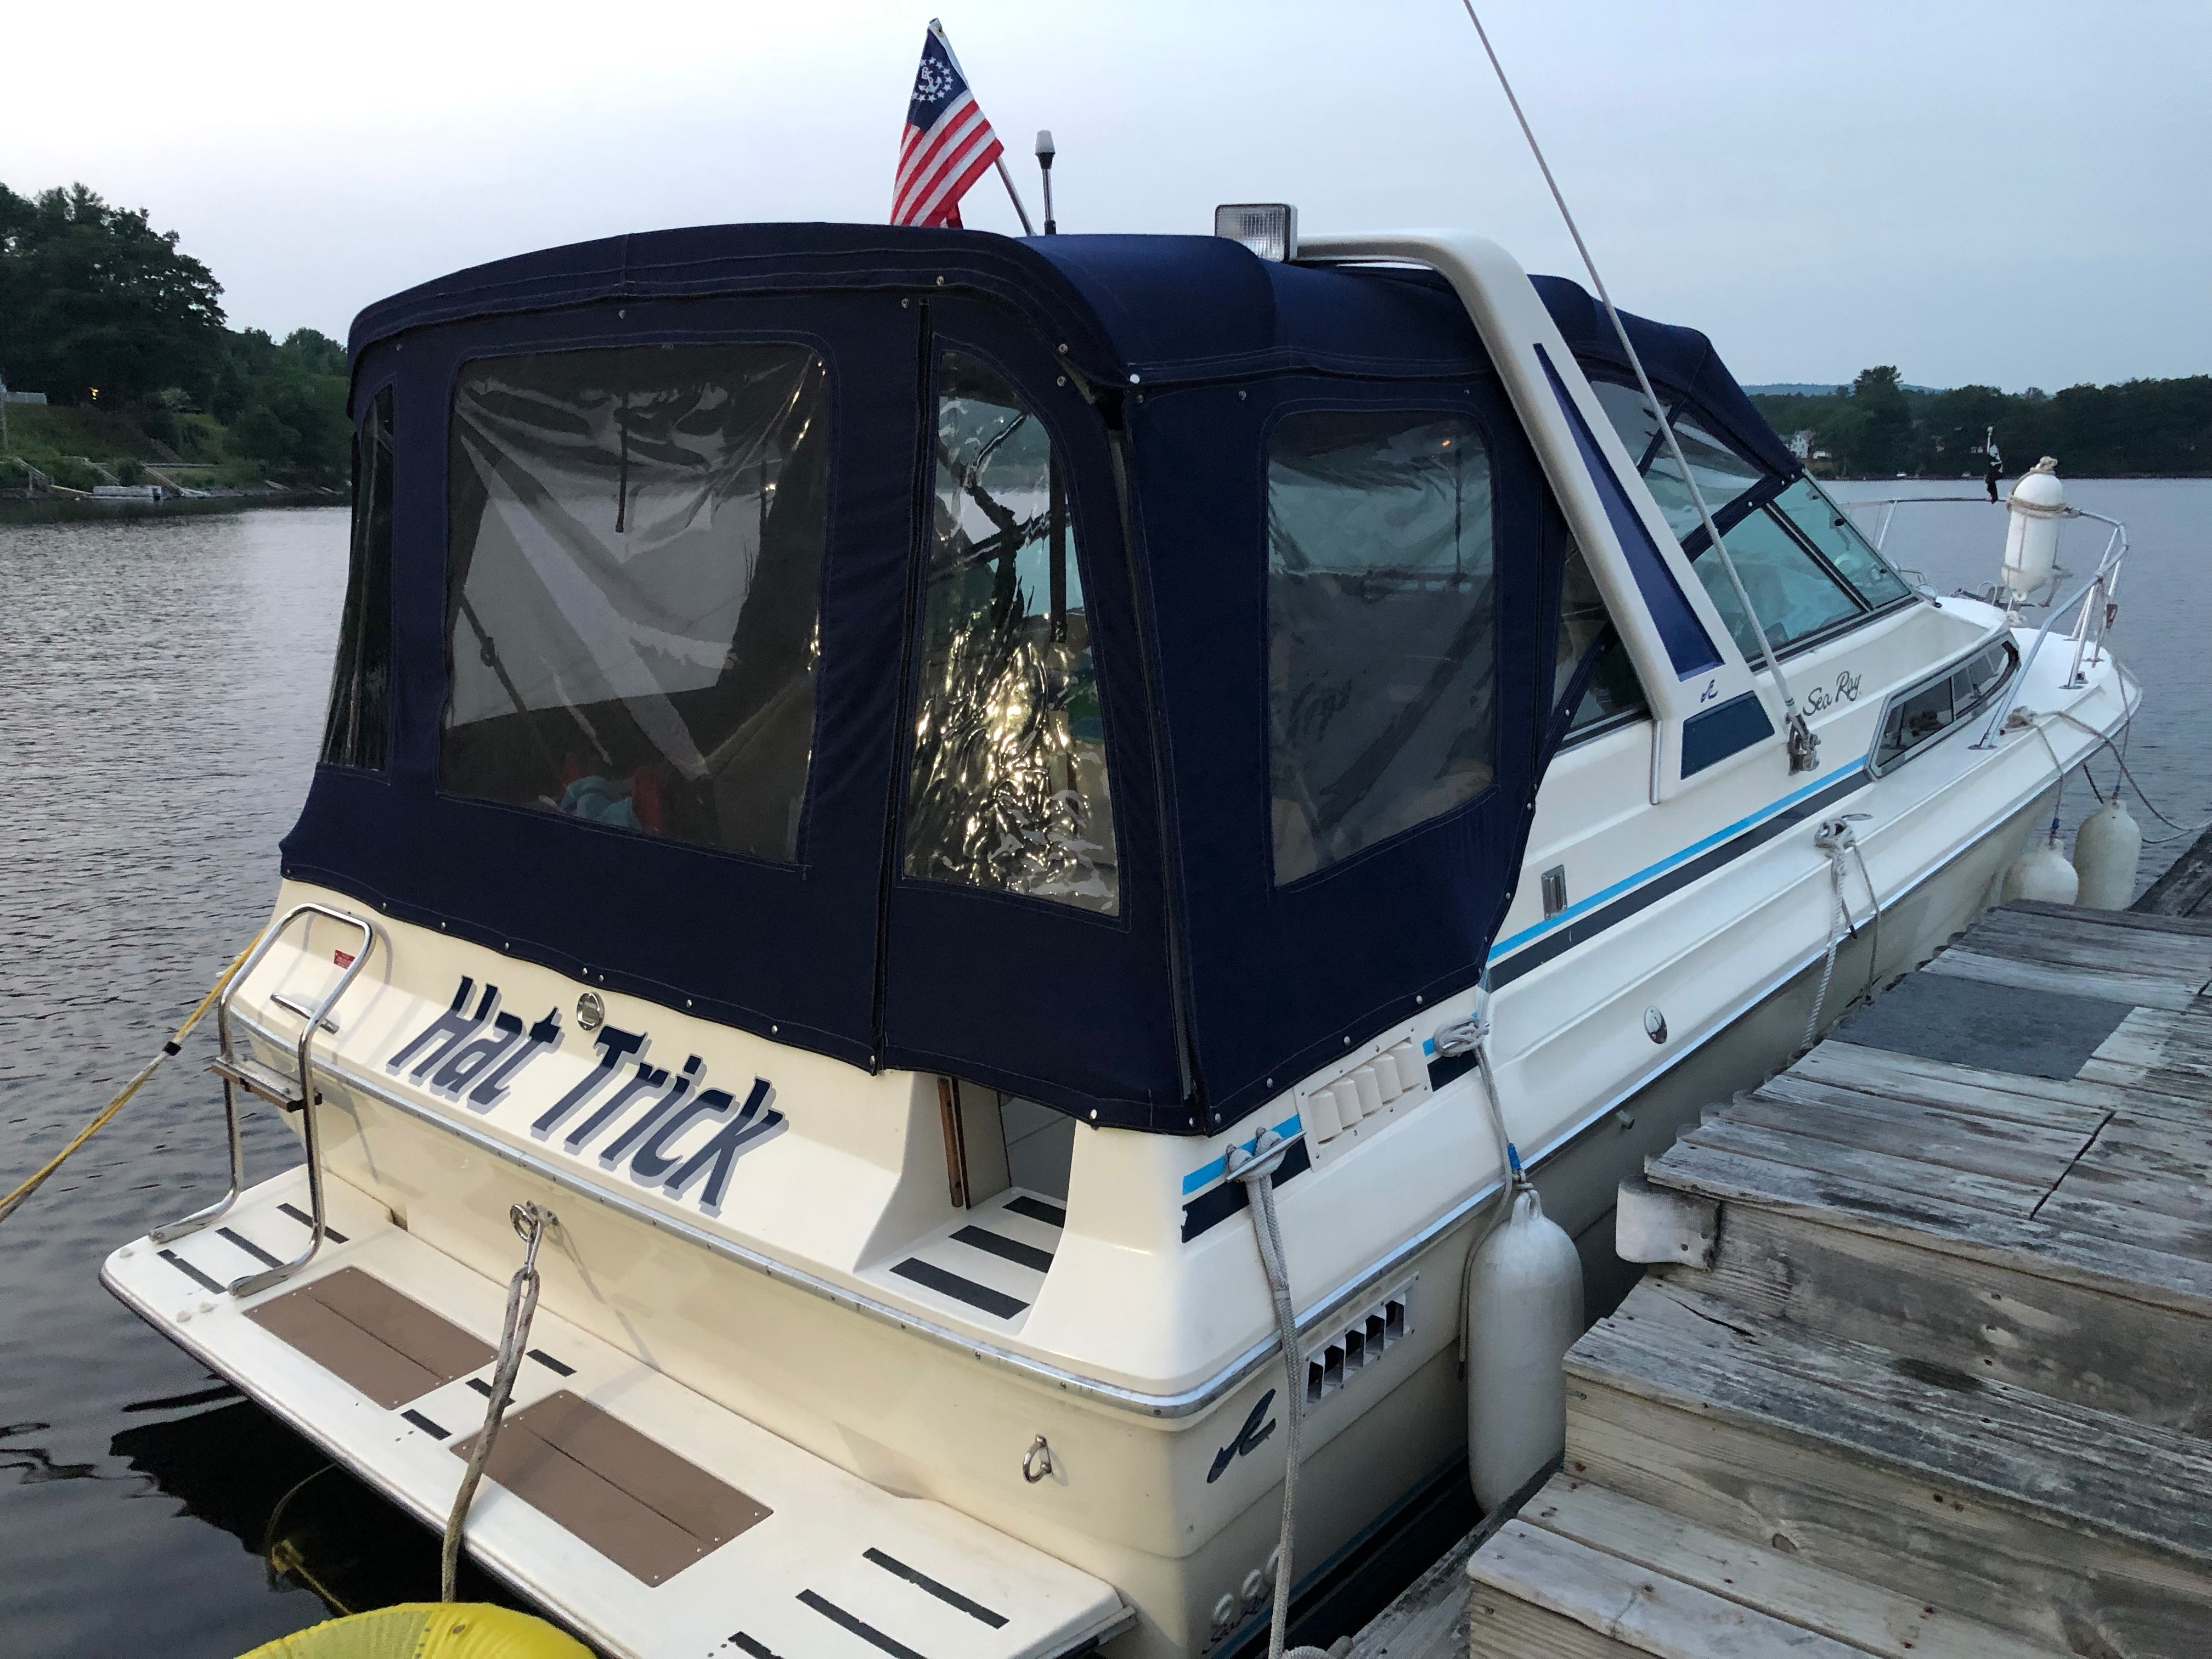 Used   Sea Ray power boats for sale in New York - Page 10 of